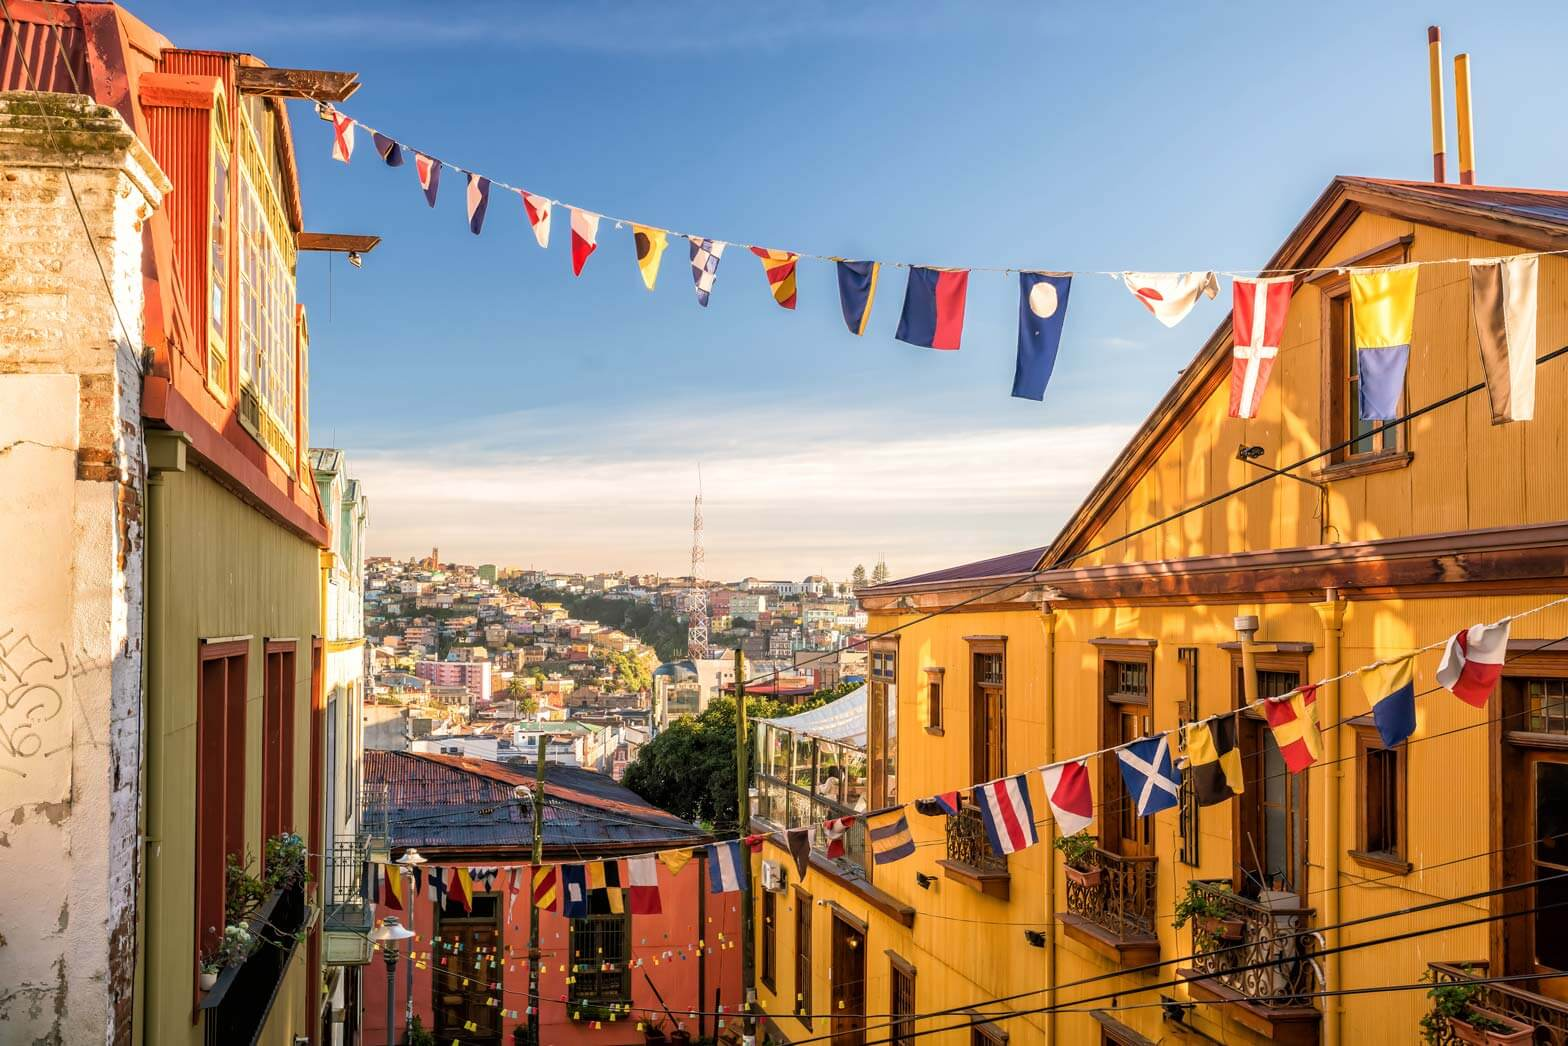 UNESCO World Heritage city of Valparaiso, Chile